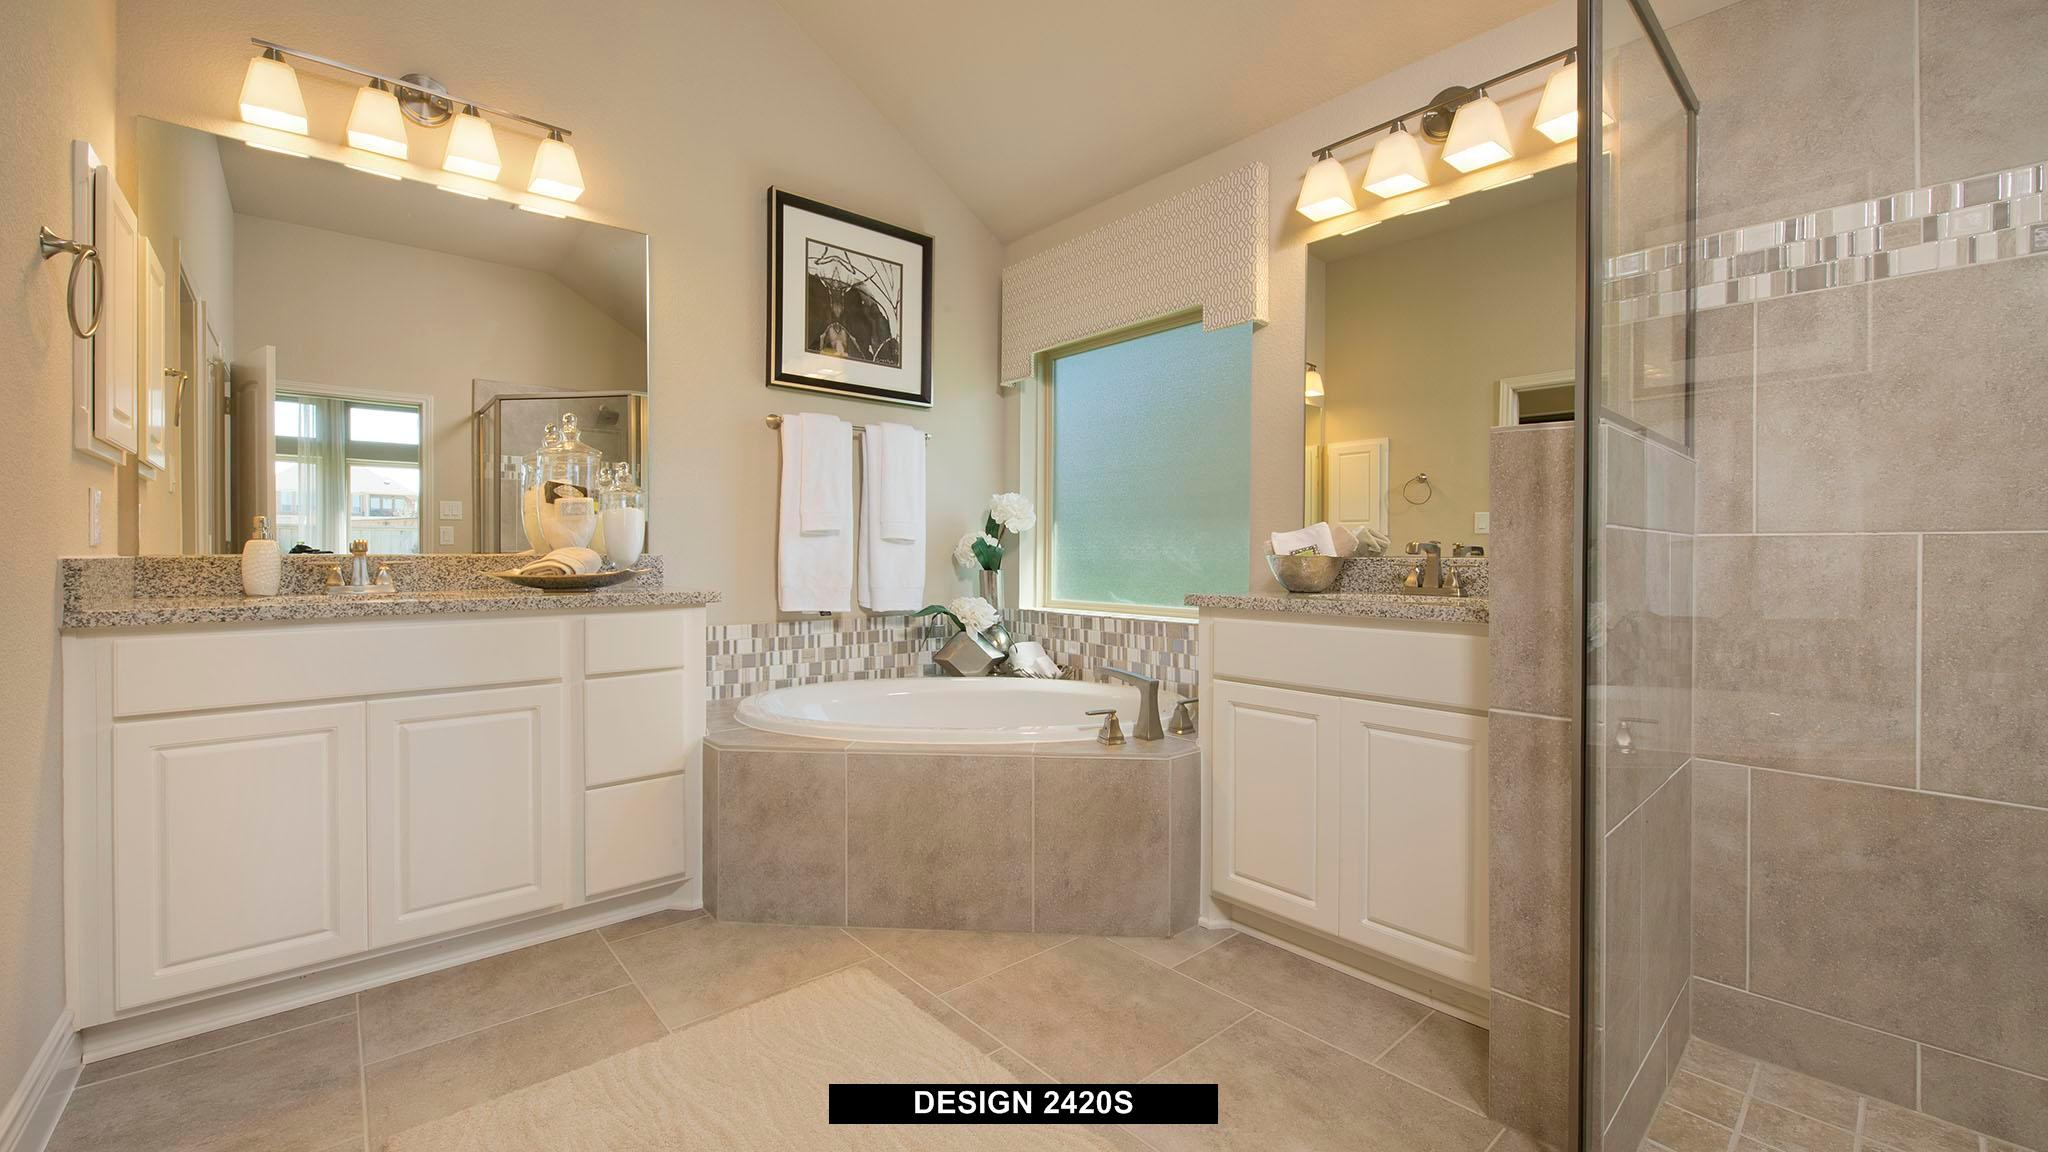 Bathroom featured in the 2420S By Perry Homes in San Antonio, TX